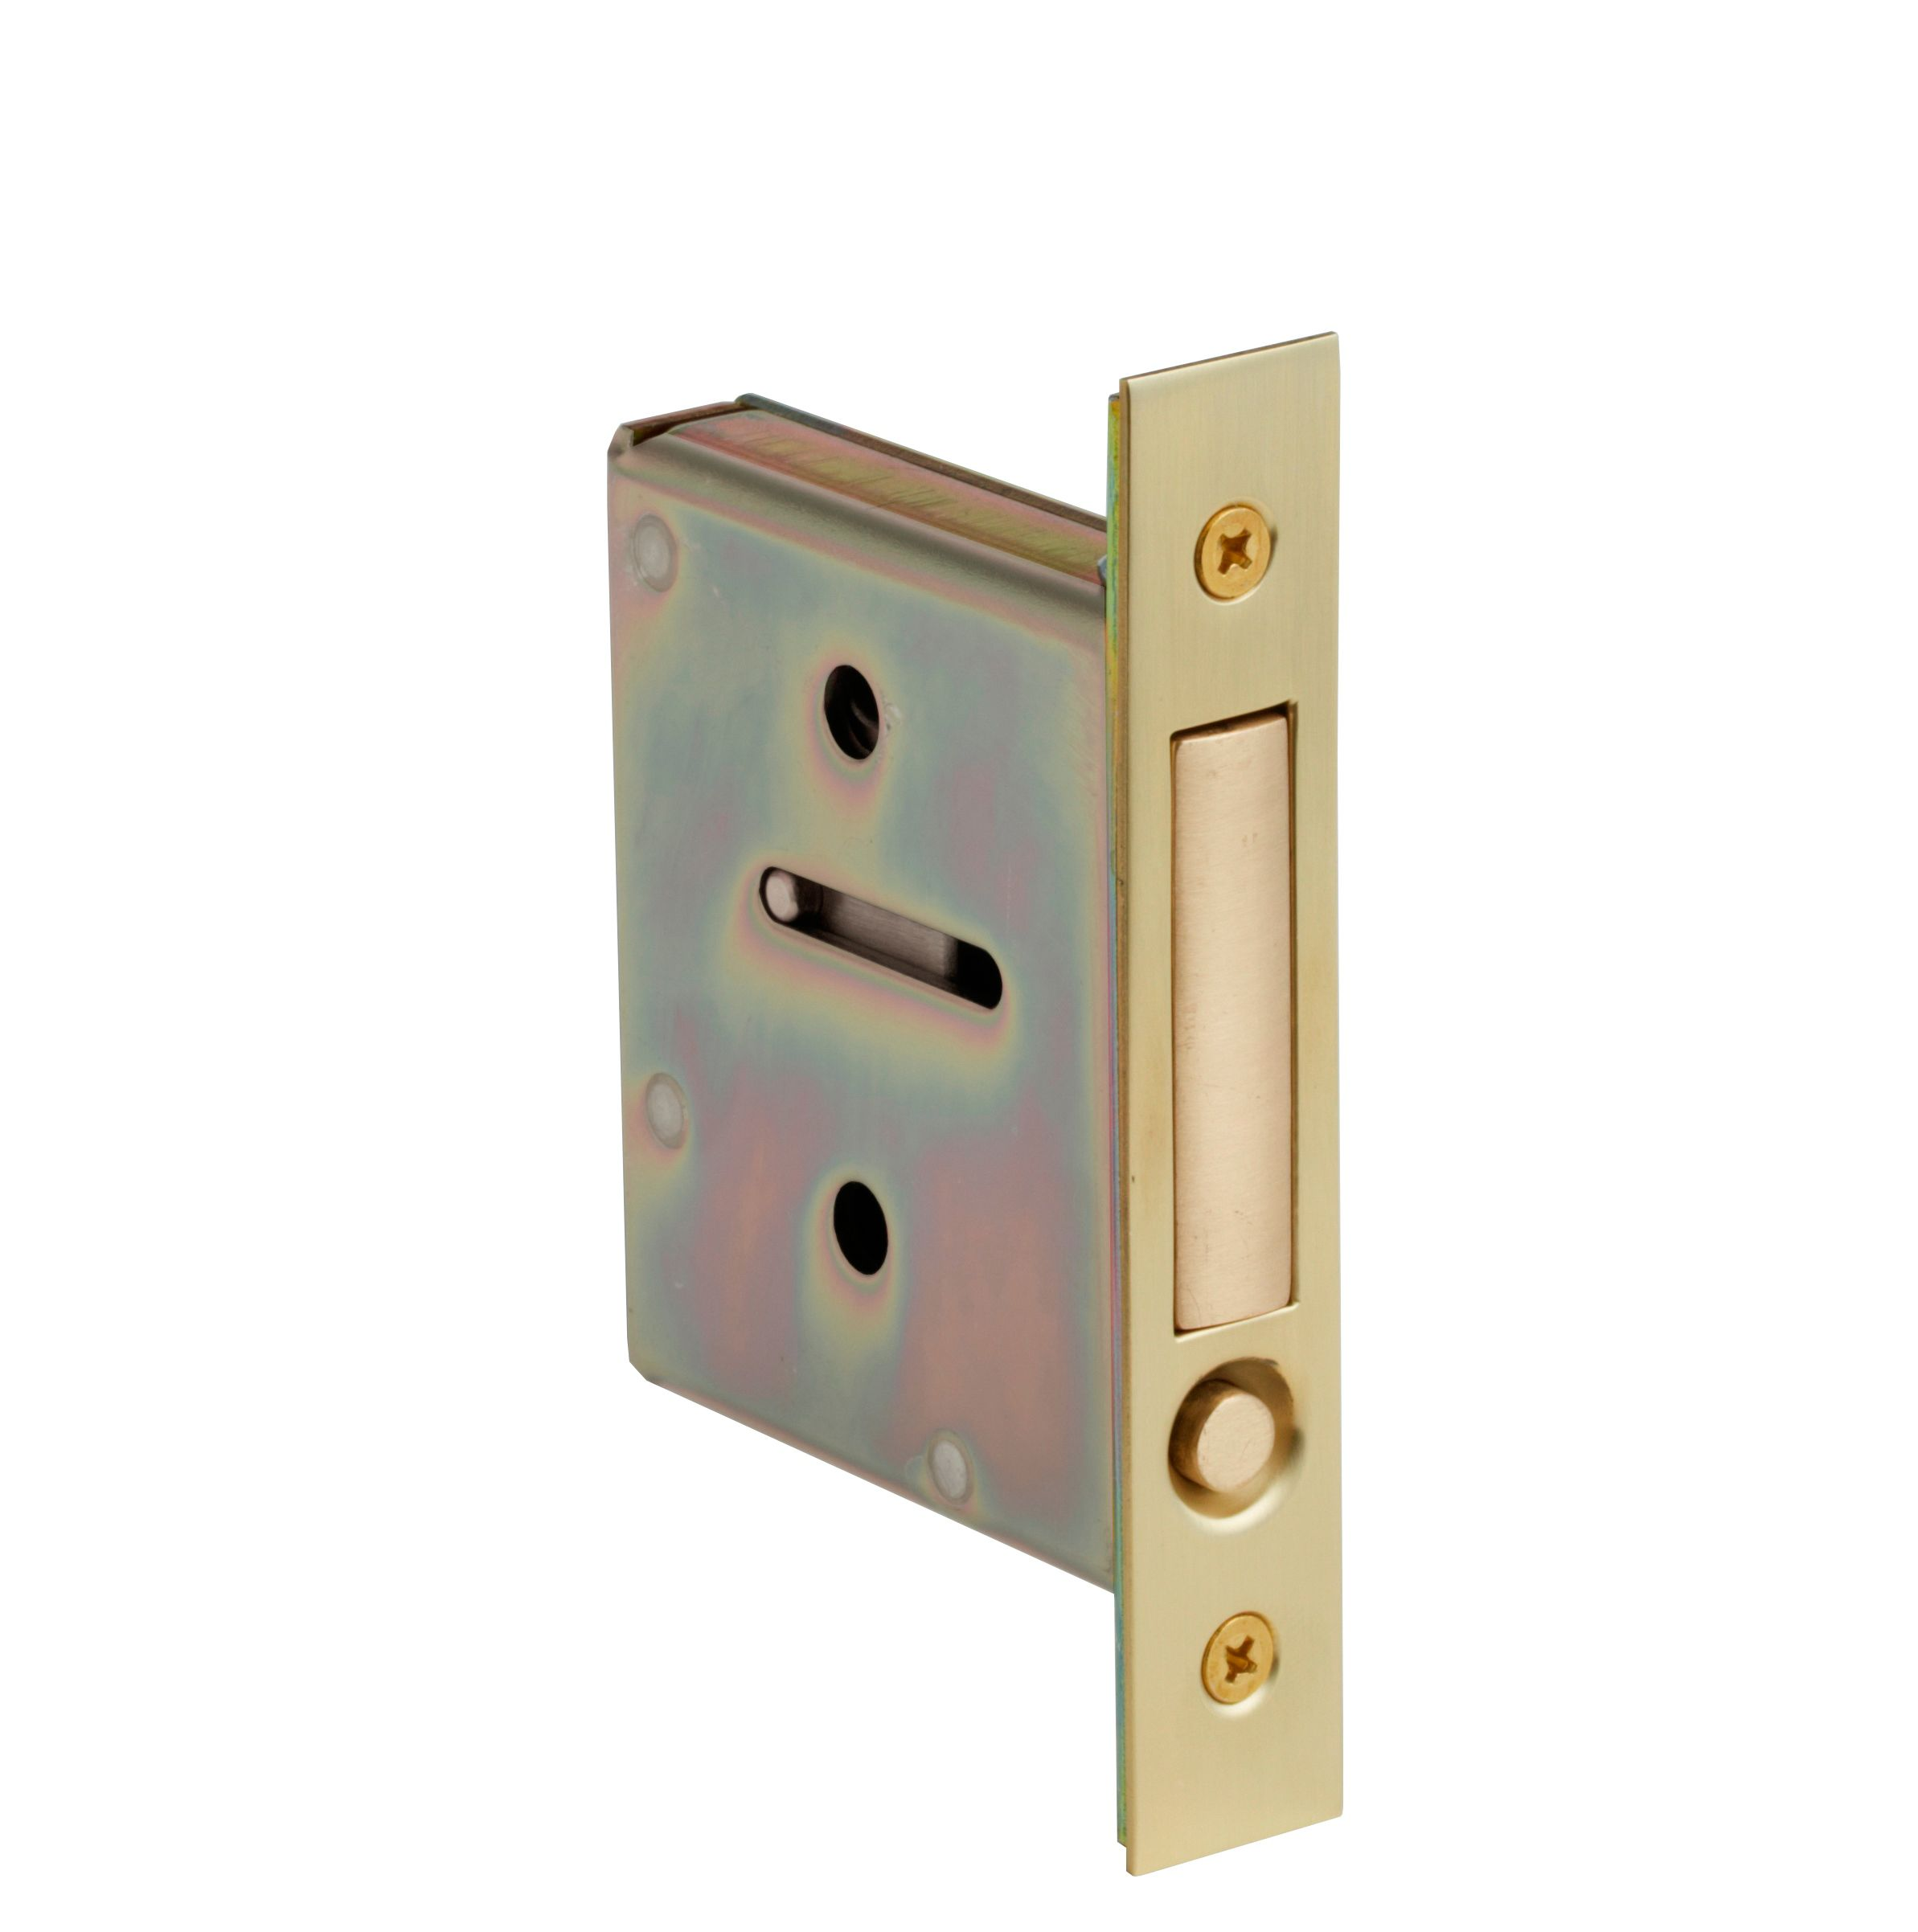 8601 Pocket Door Pull Model #: 8601.033